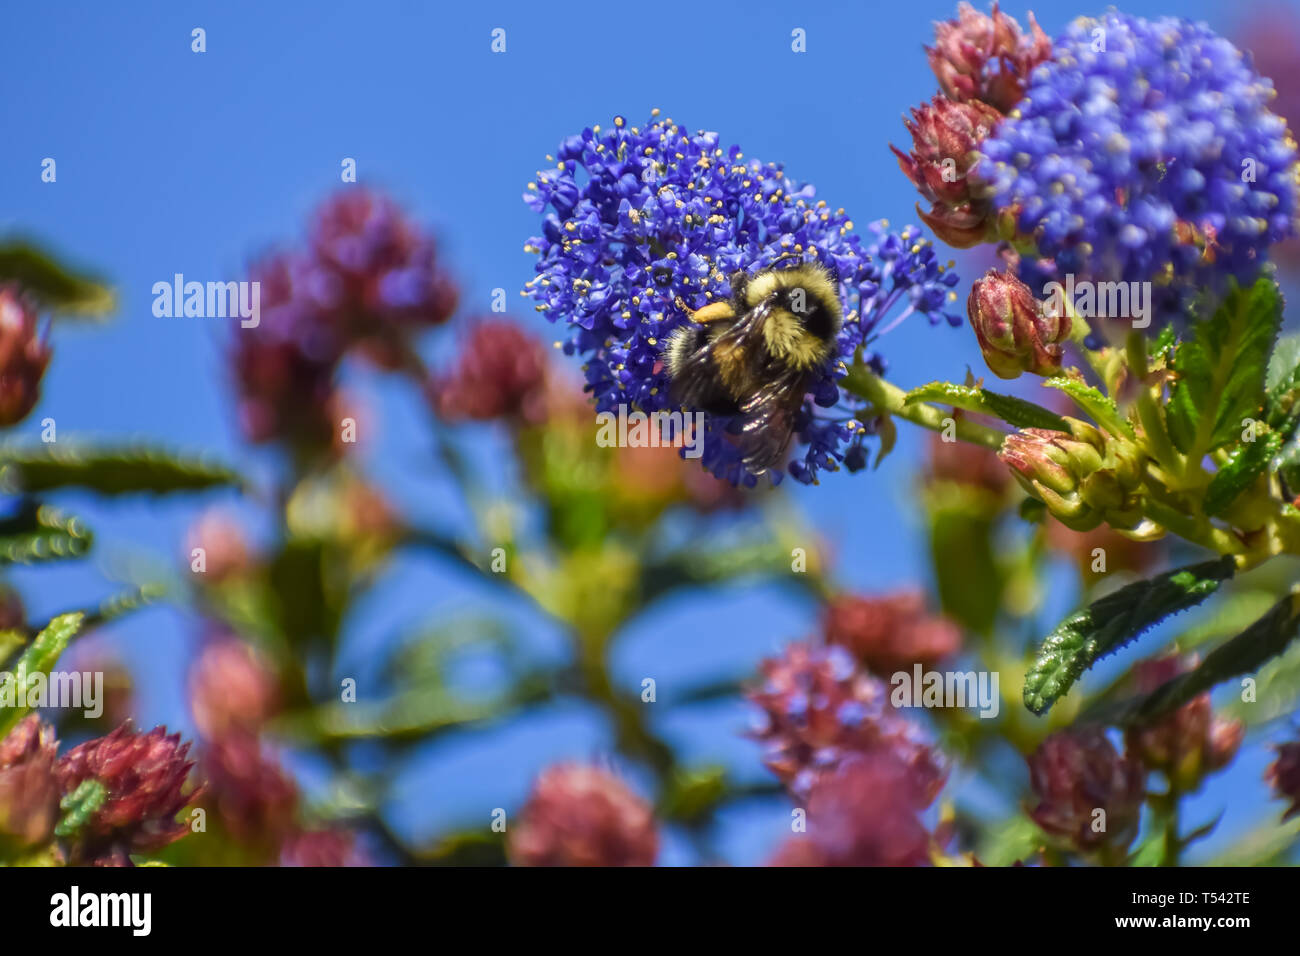 Yellow and black bumble bee on the purple blossom of a wild lilac against the background of flowers and a blue sky. - Stock Image